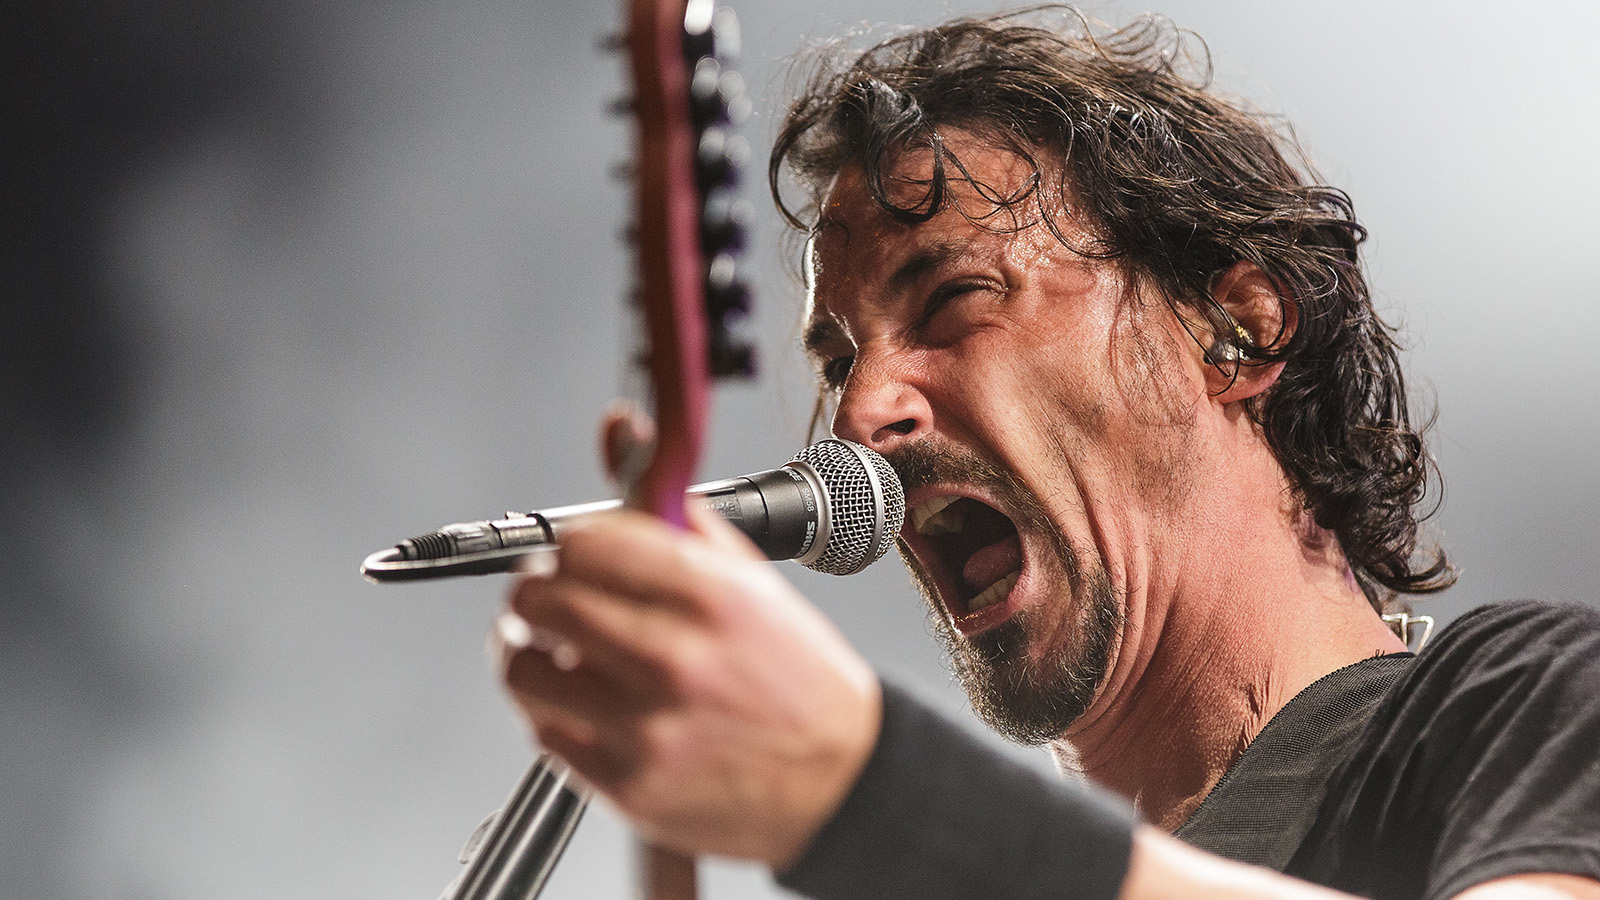 The French death metal band Gojira performs a live concert at the Danish music festival Roskilde Festival 2016. Here guitarist and vocalist Joe Duplantier is seen live on stage. Denmark, 02/07 2016. (Photo by: PYMCA/Avalon/Universal Images Group via Getty Images)